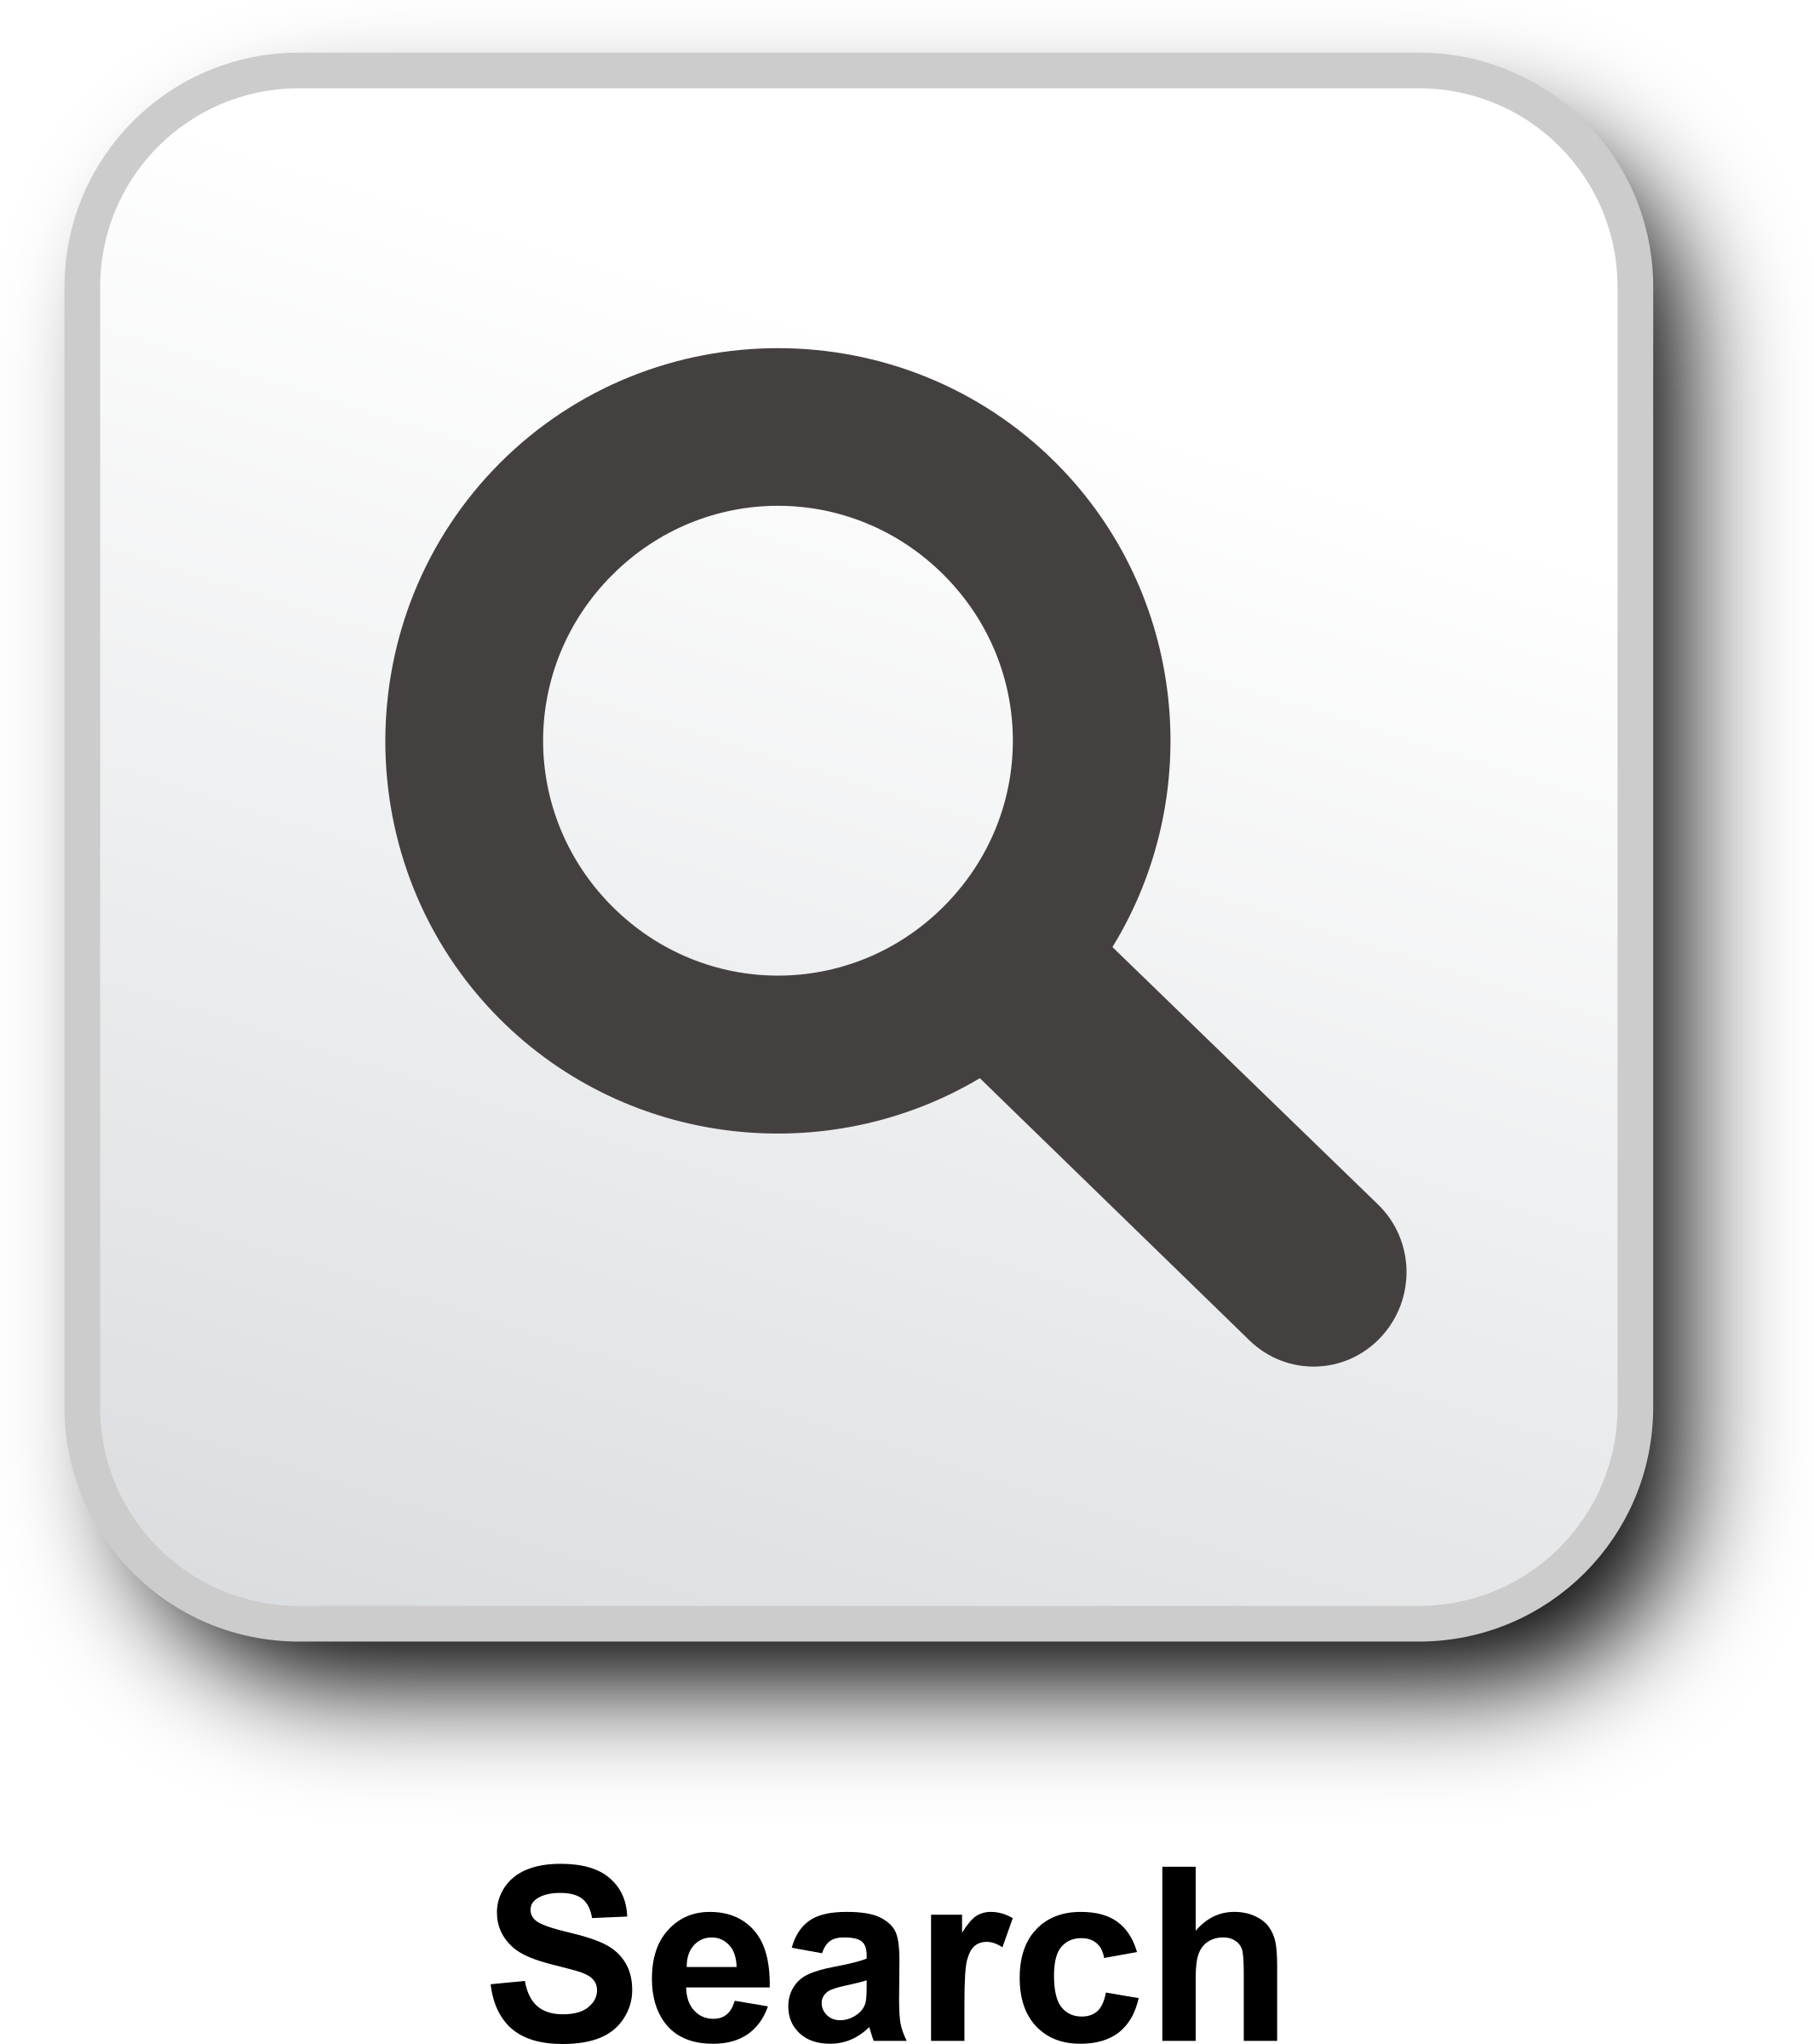 Search Icon - Web Icons PNG